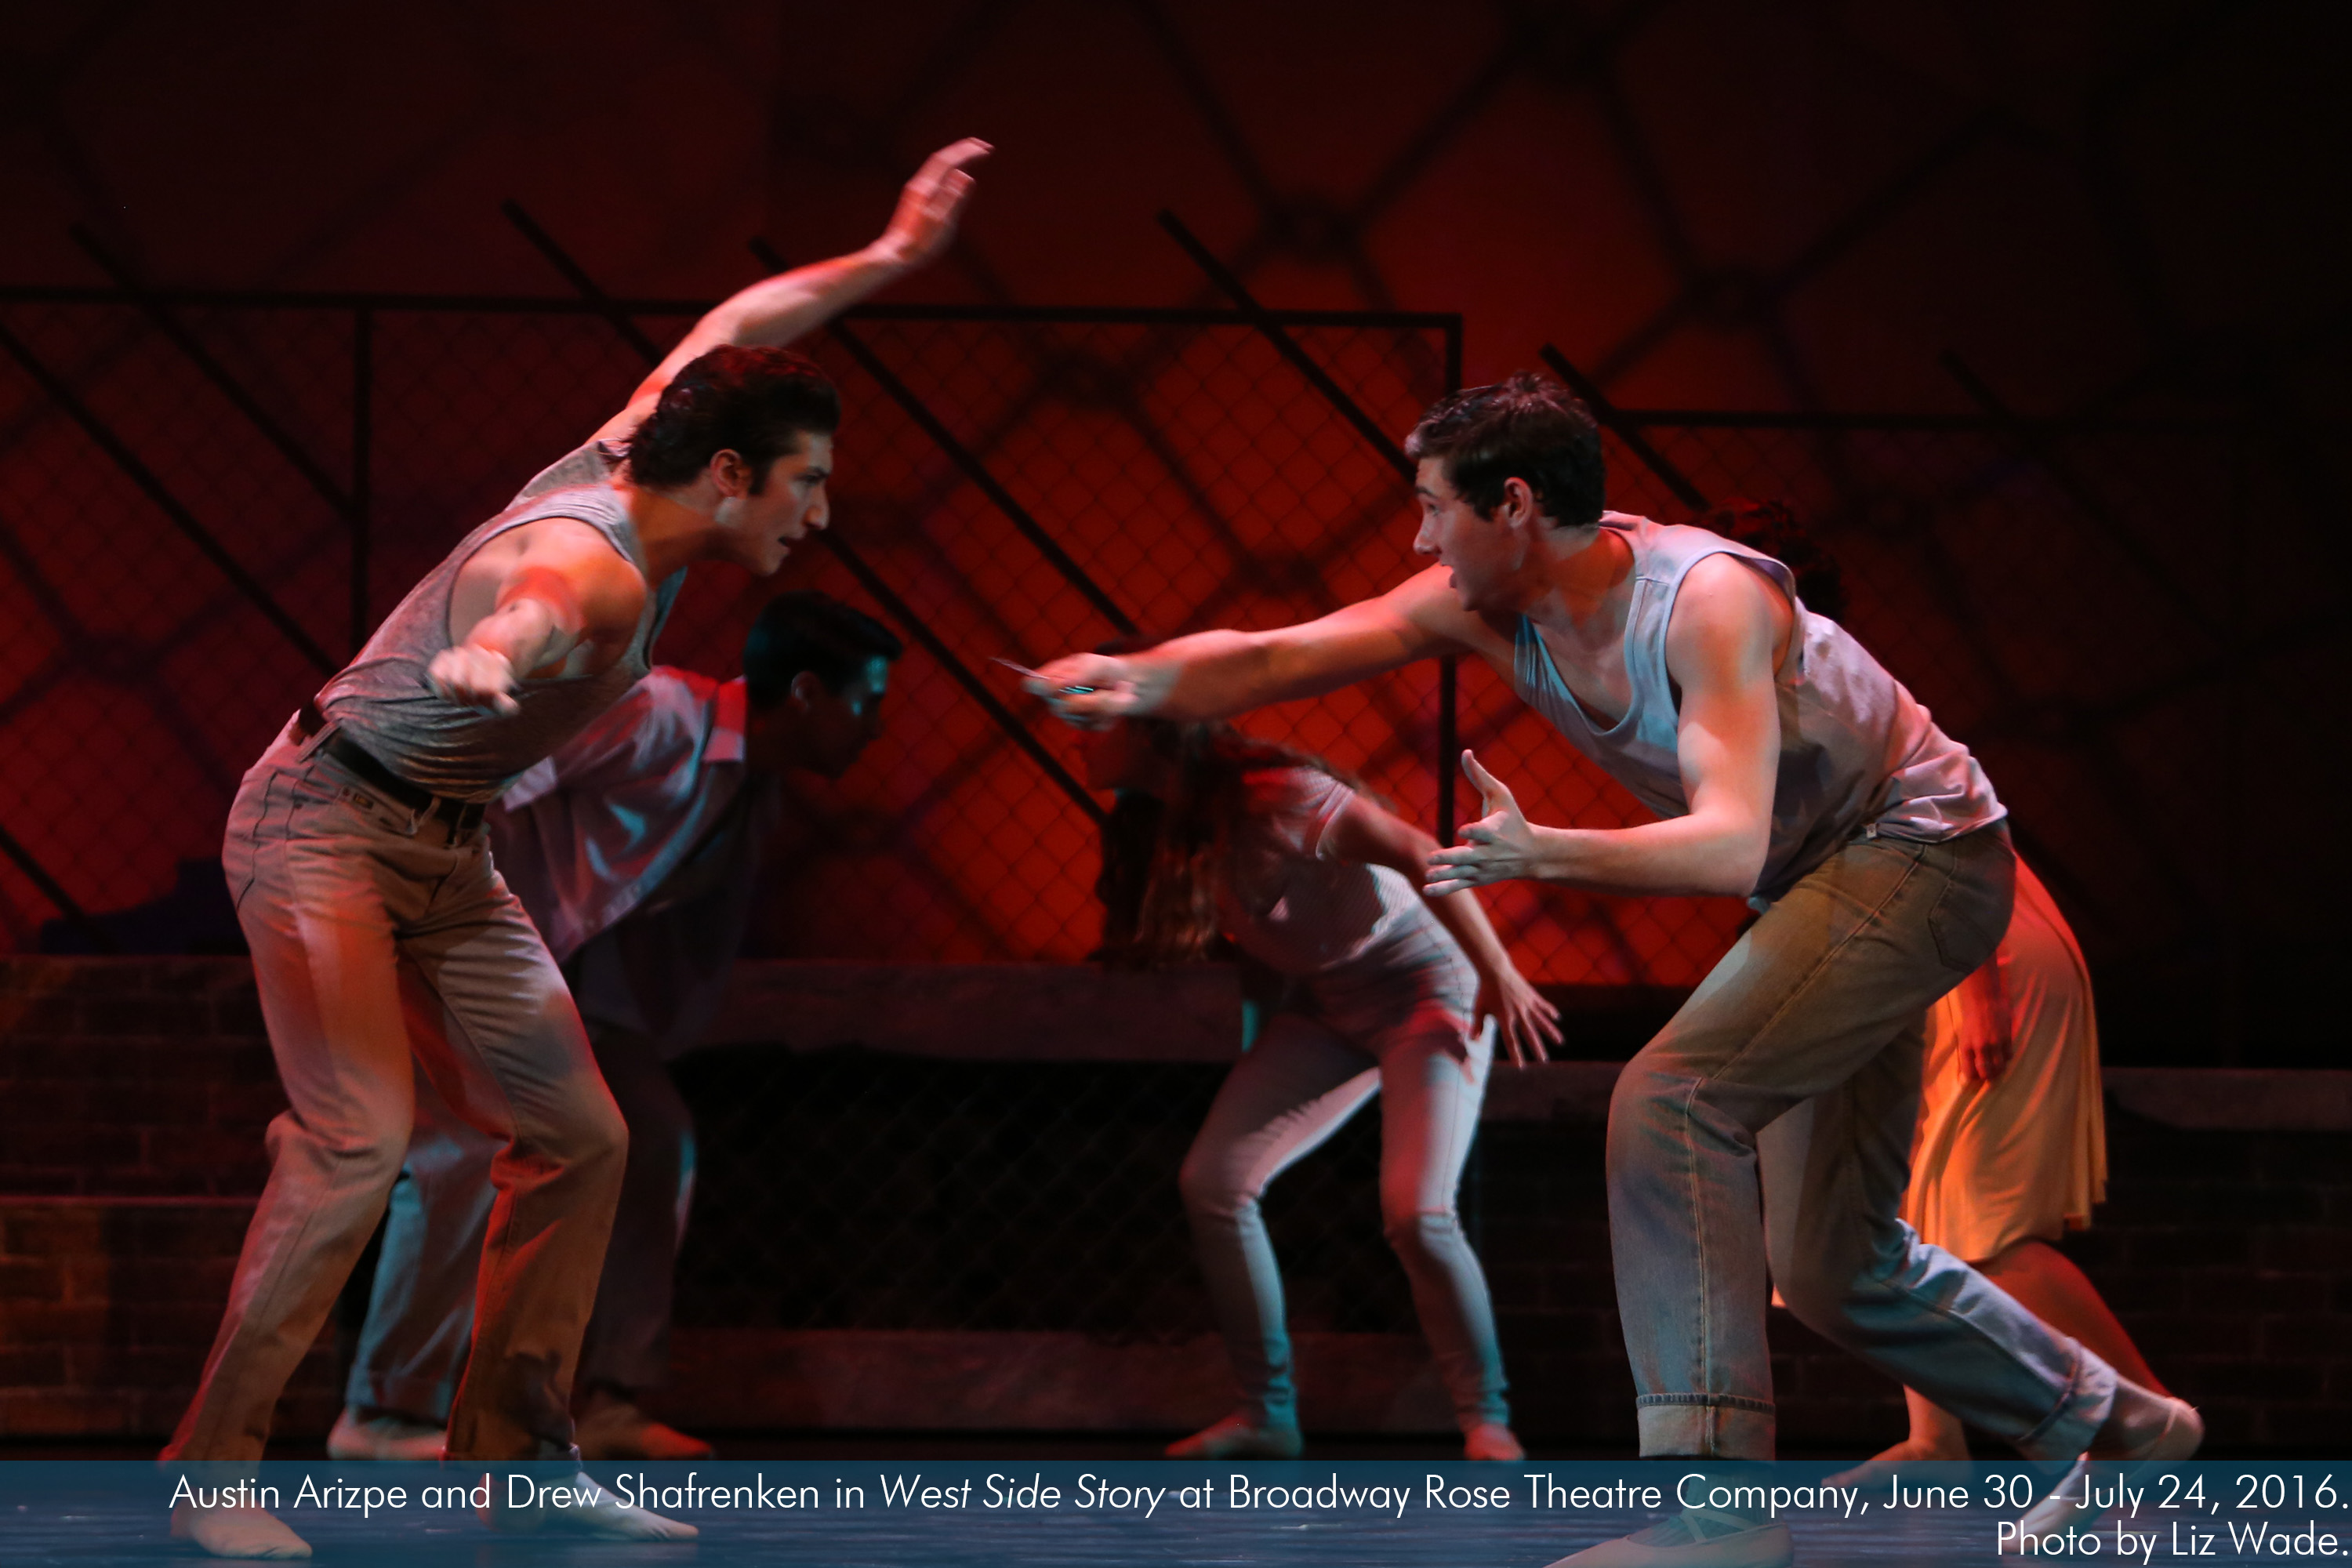 Austin Arizpe and Drew Shafranken in West Side Story at Broadway Rose Theatre Company. Photo by Liz Wade.